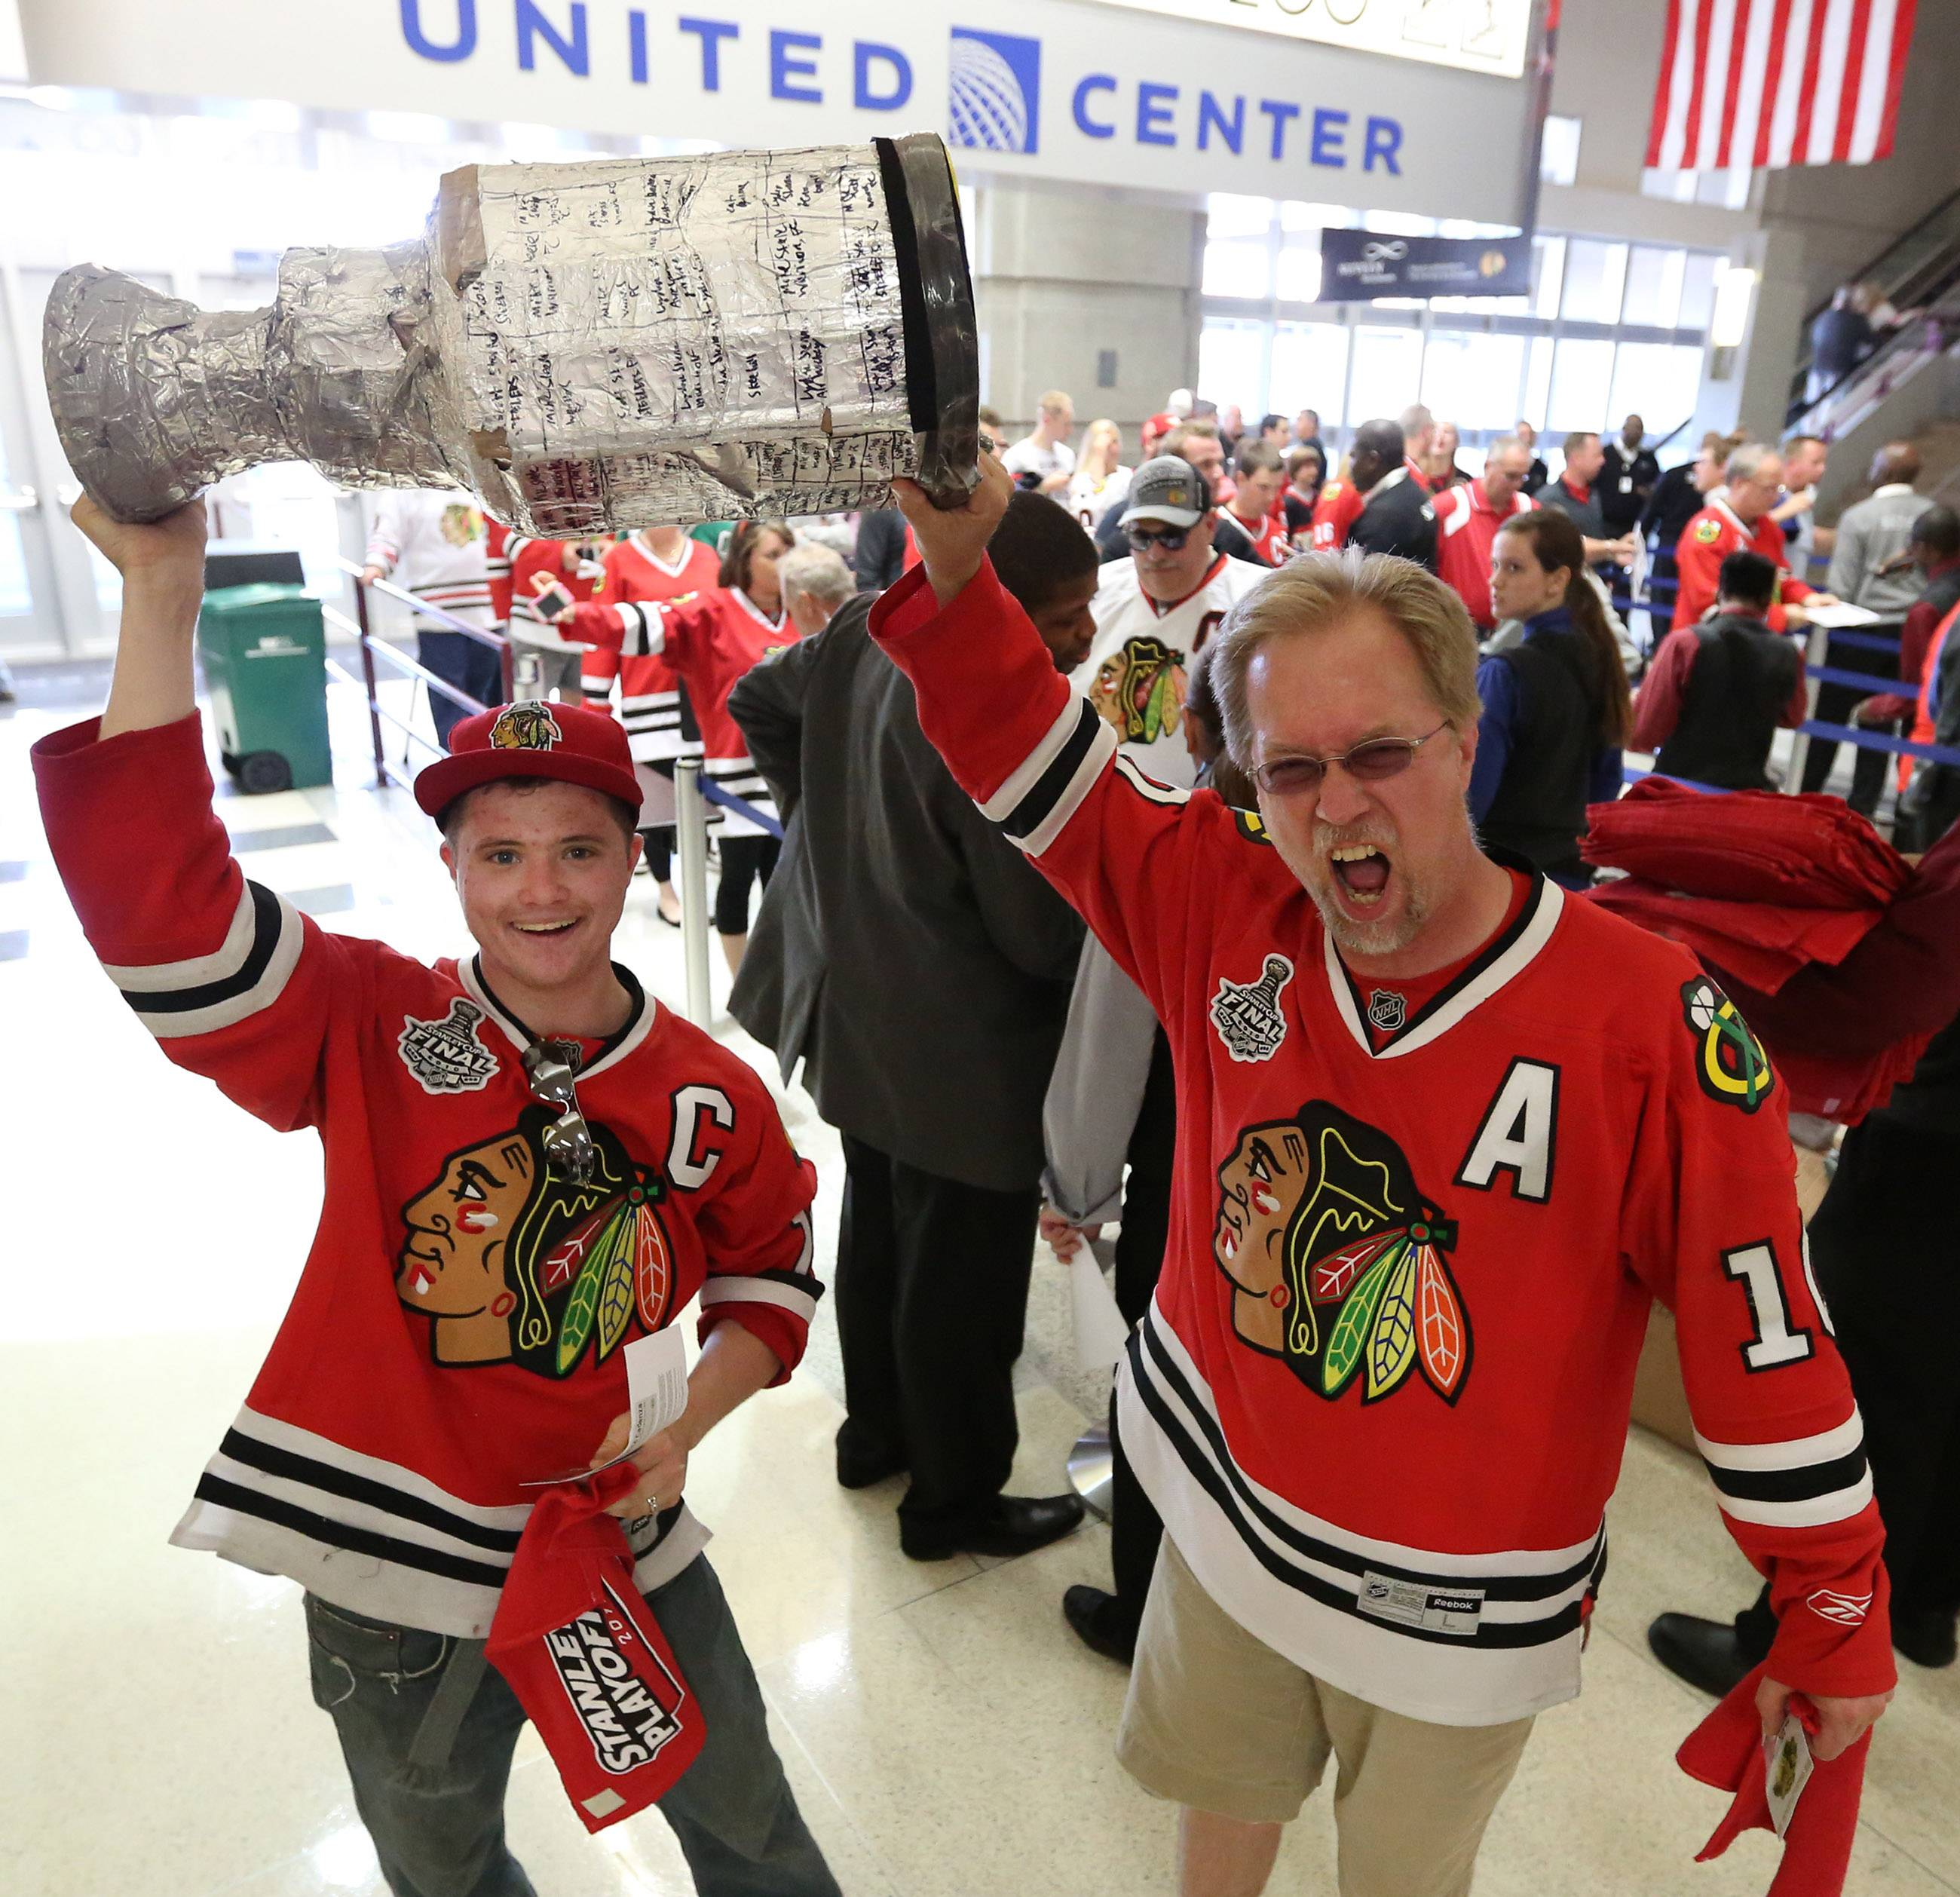 Mike Steele with his dad, Scott, both of Naperville enter the United Center with a Stanley Cup they made.